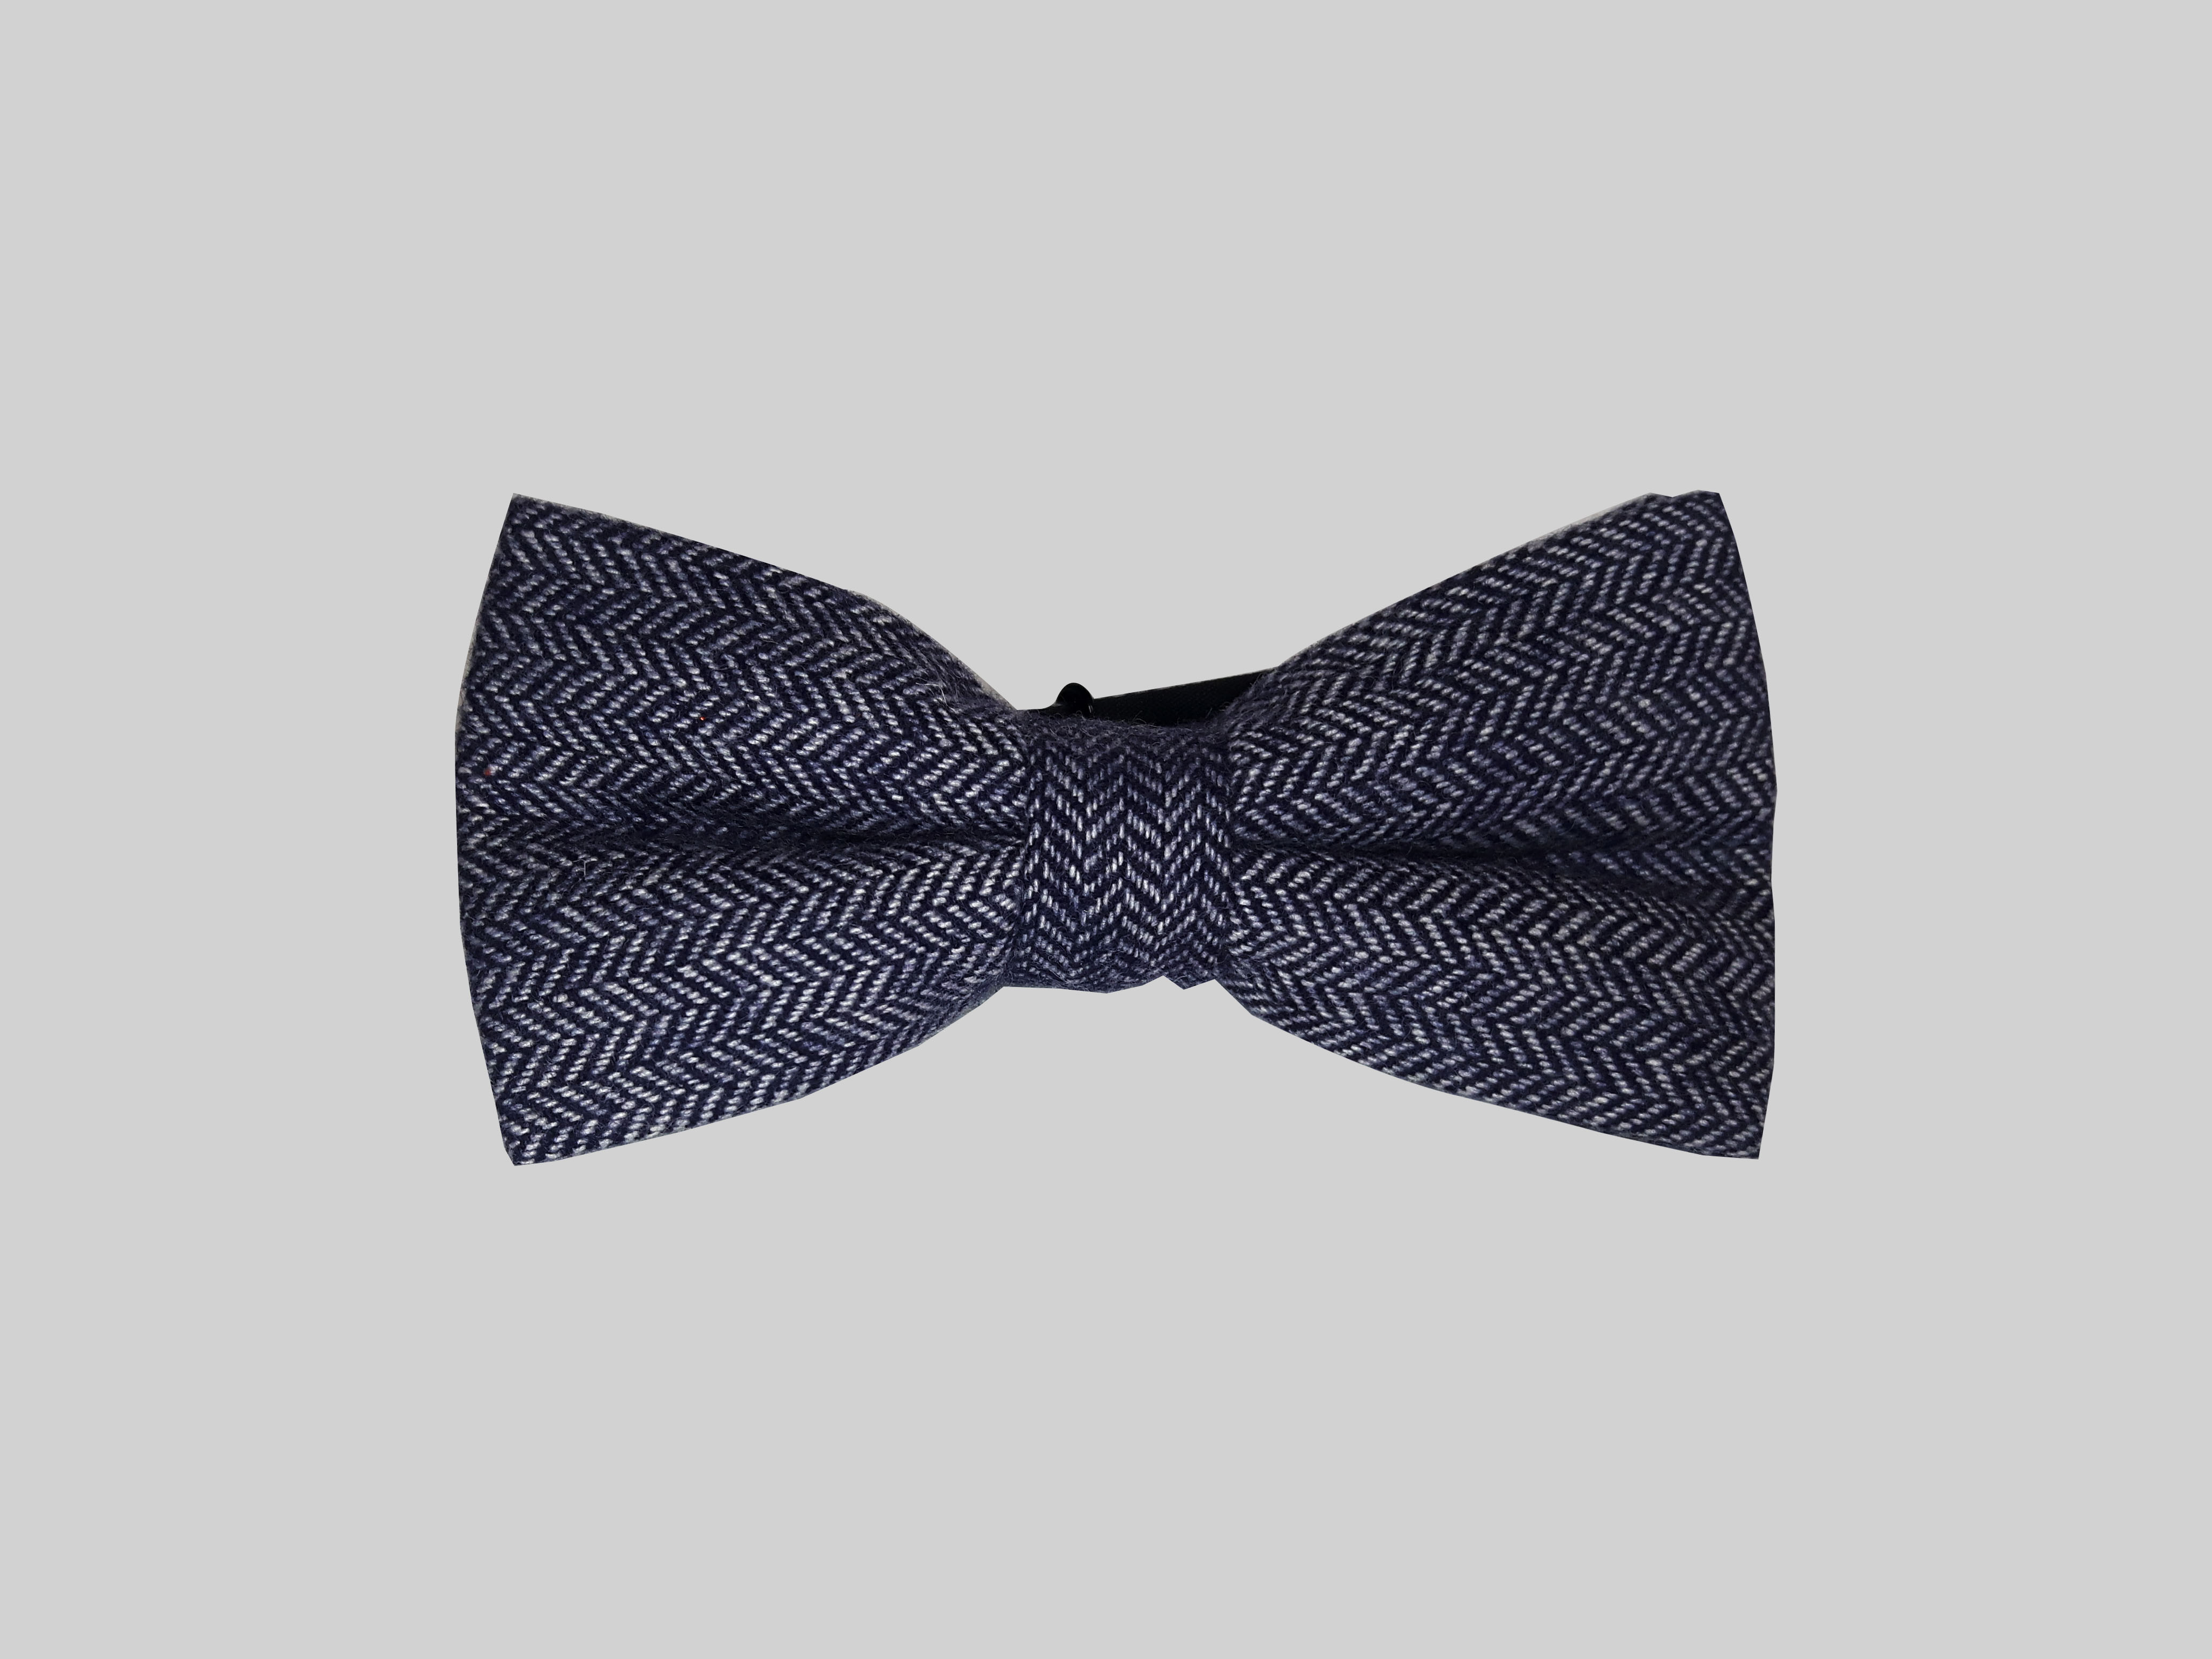 A wool bowtie by Edisons Bowtie